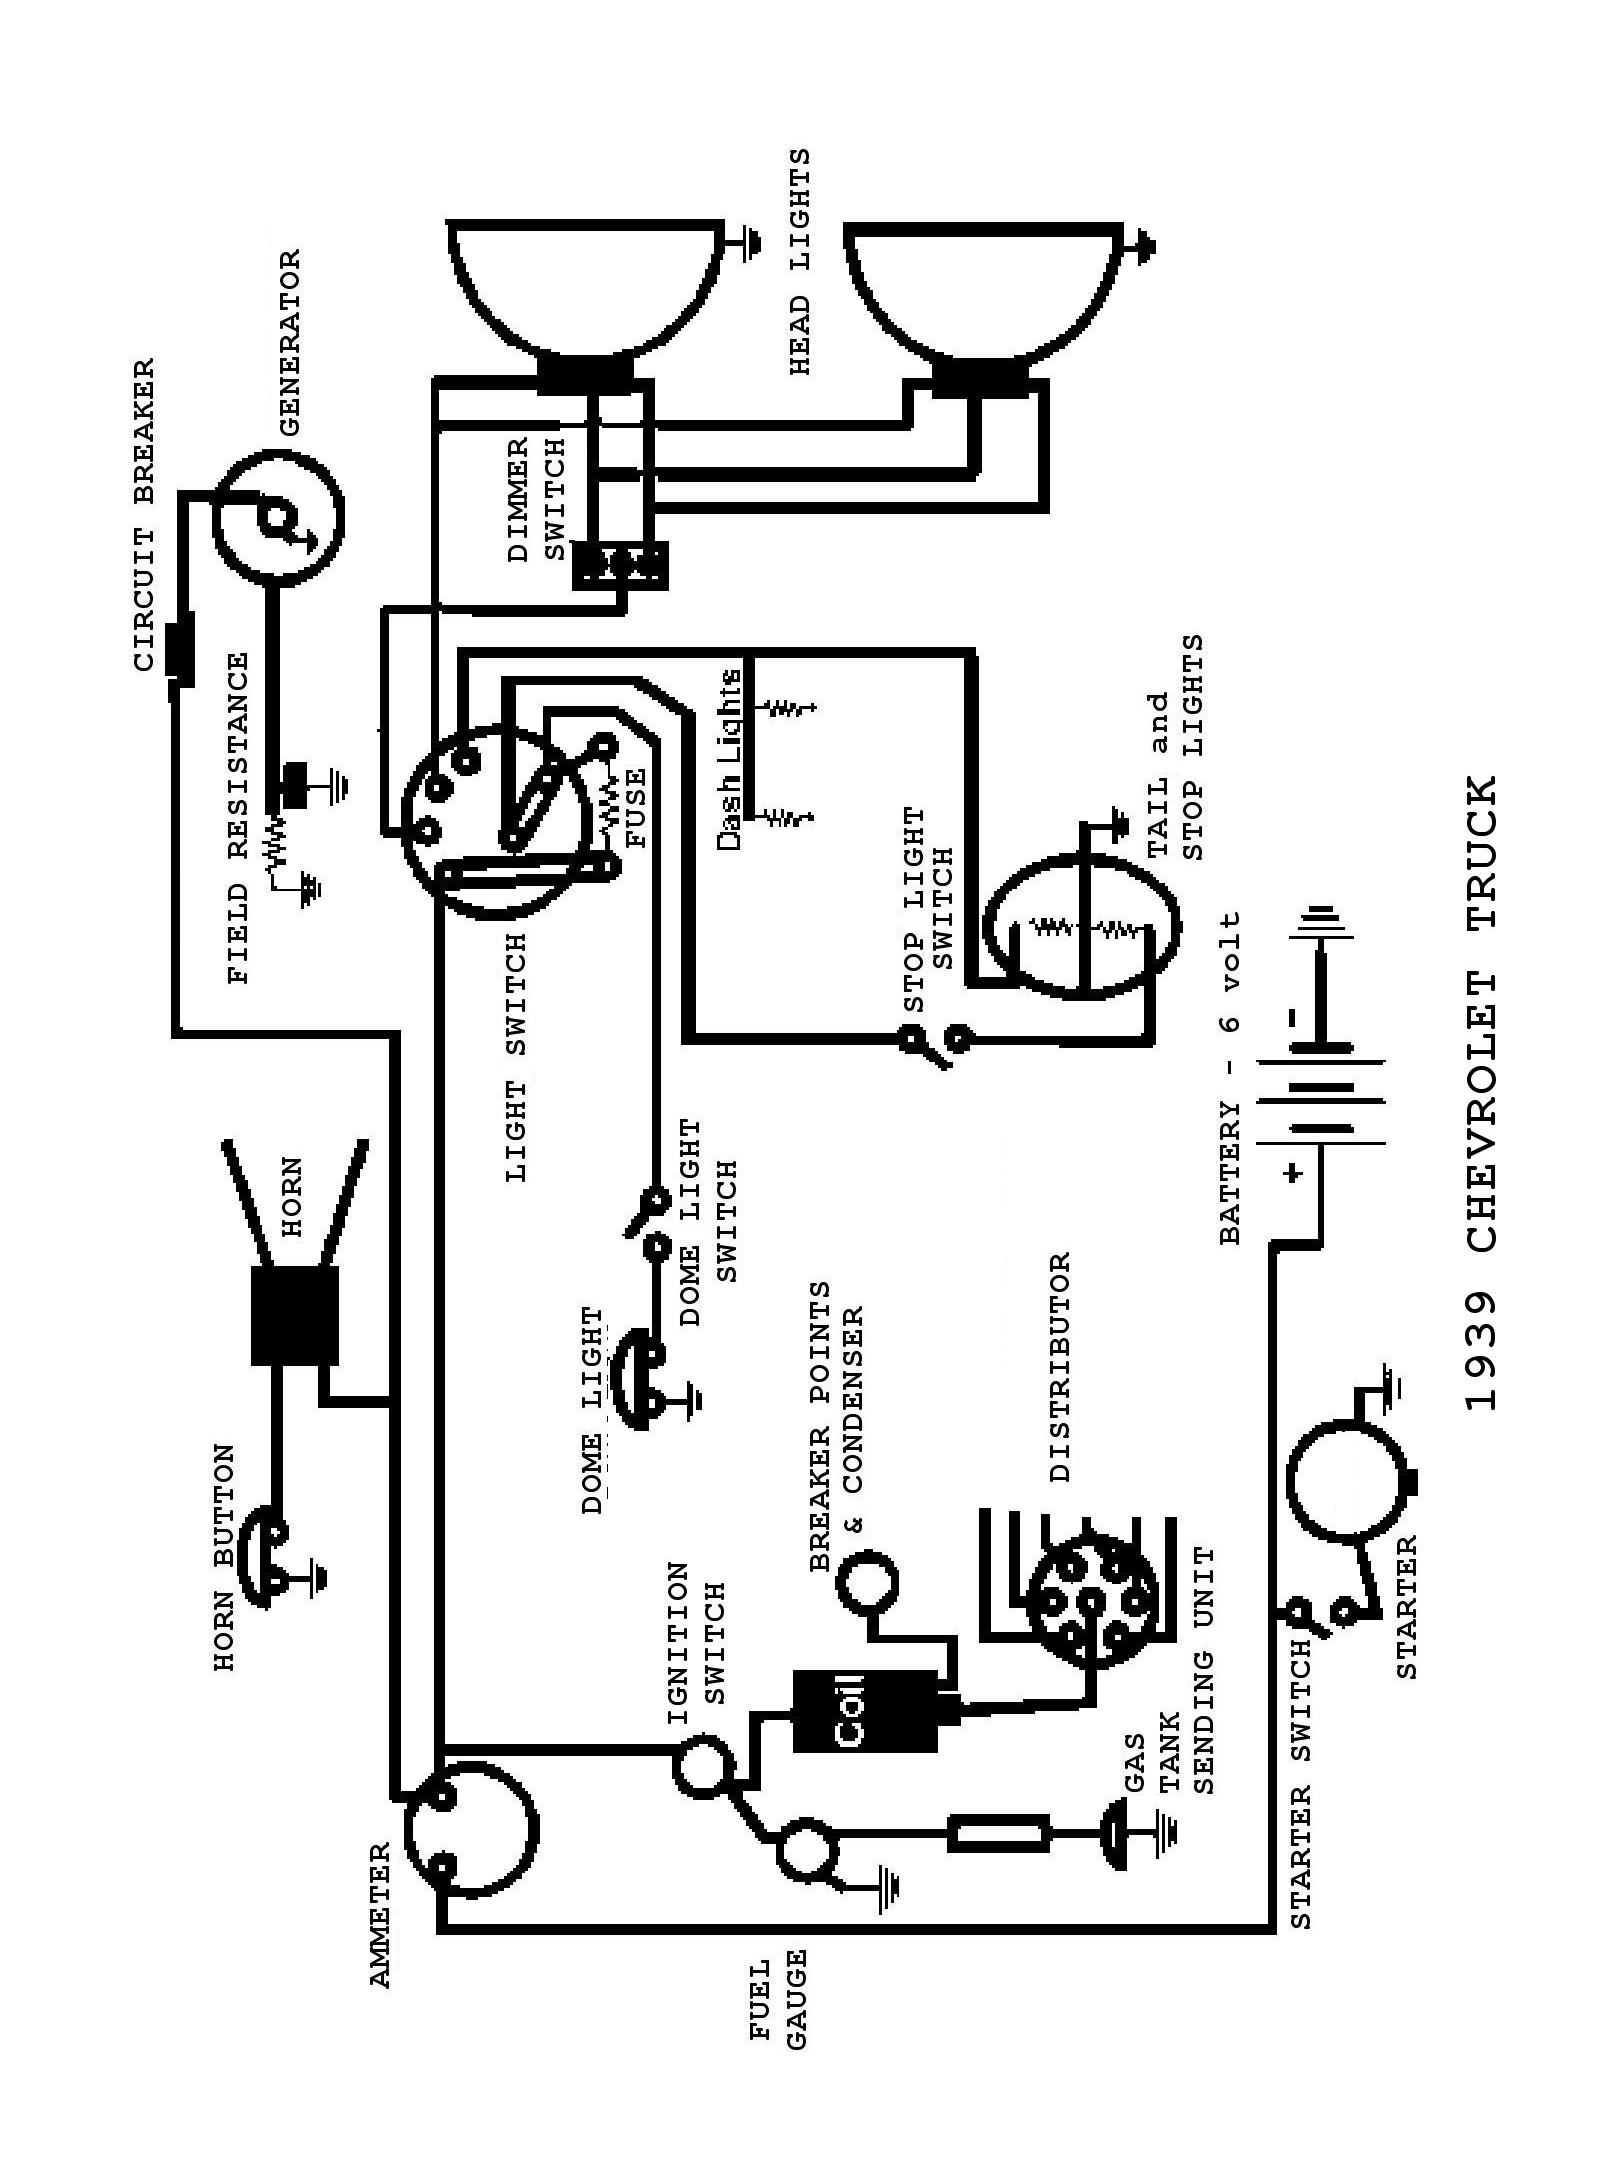 Magnificent International T444E Engine Diagram Wiring Library Wiring Digital Resources Funapmognl